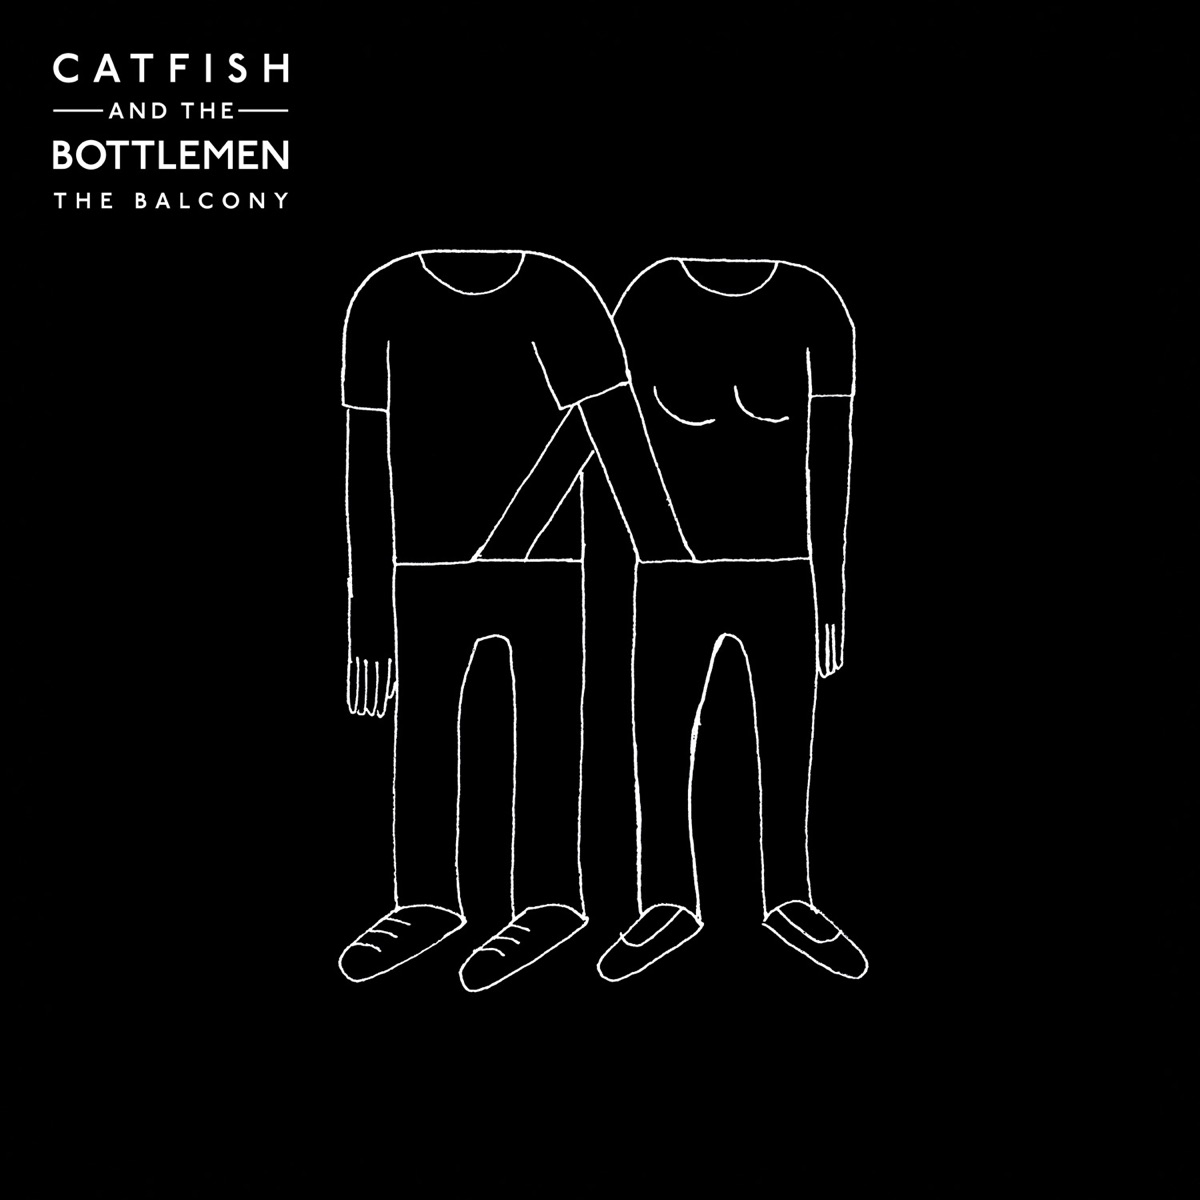 The Balcony Catfish and the Bottlemen CD cover